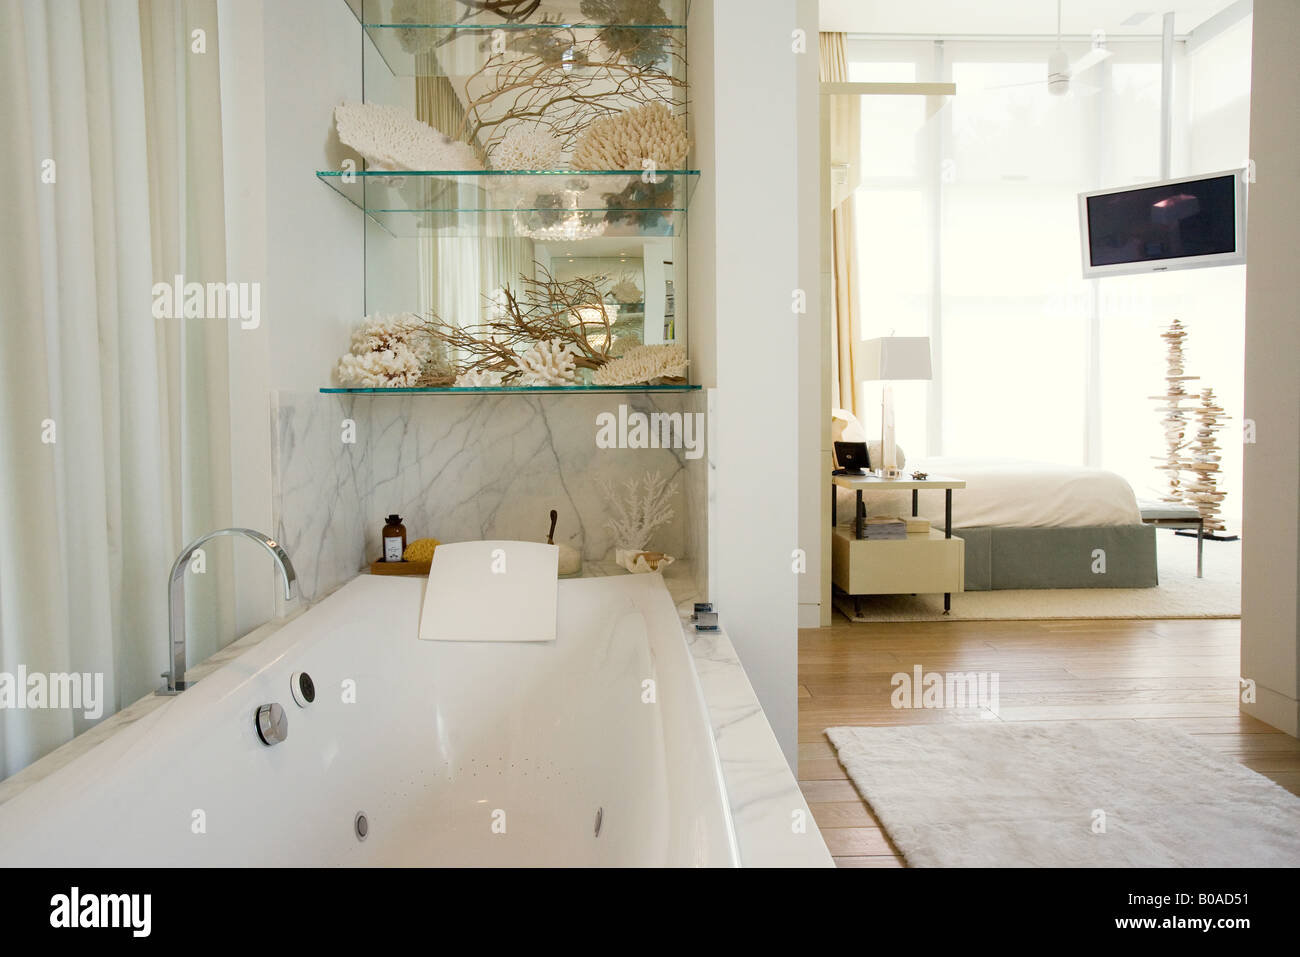 Luxury Hotel Bathroom With Large Bathtub Bedroom In Background